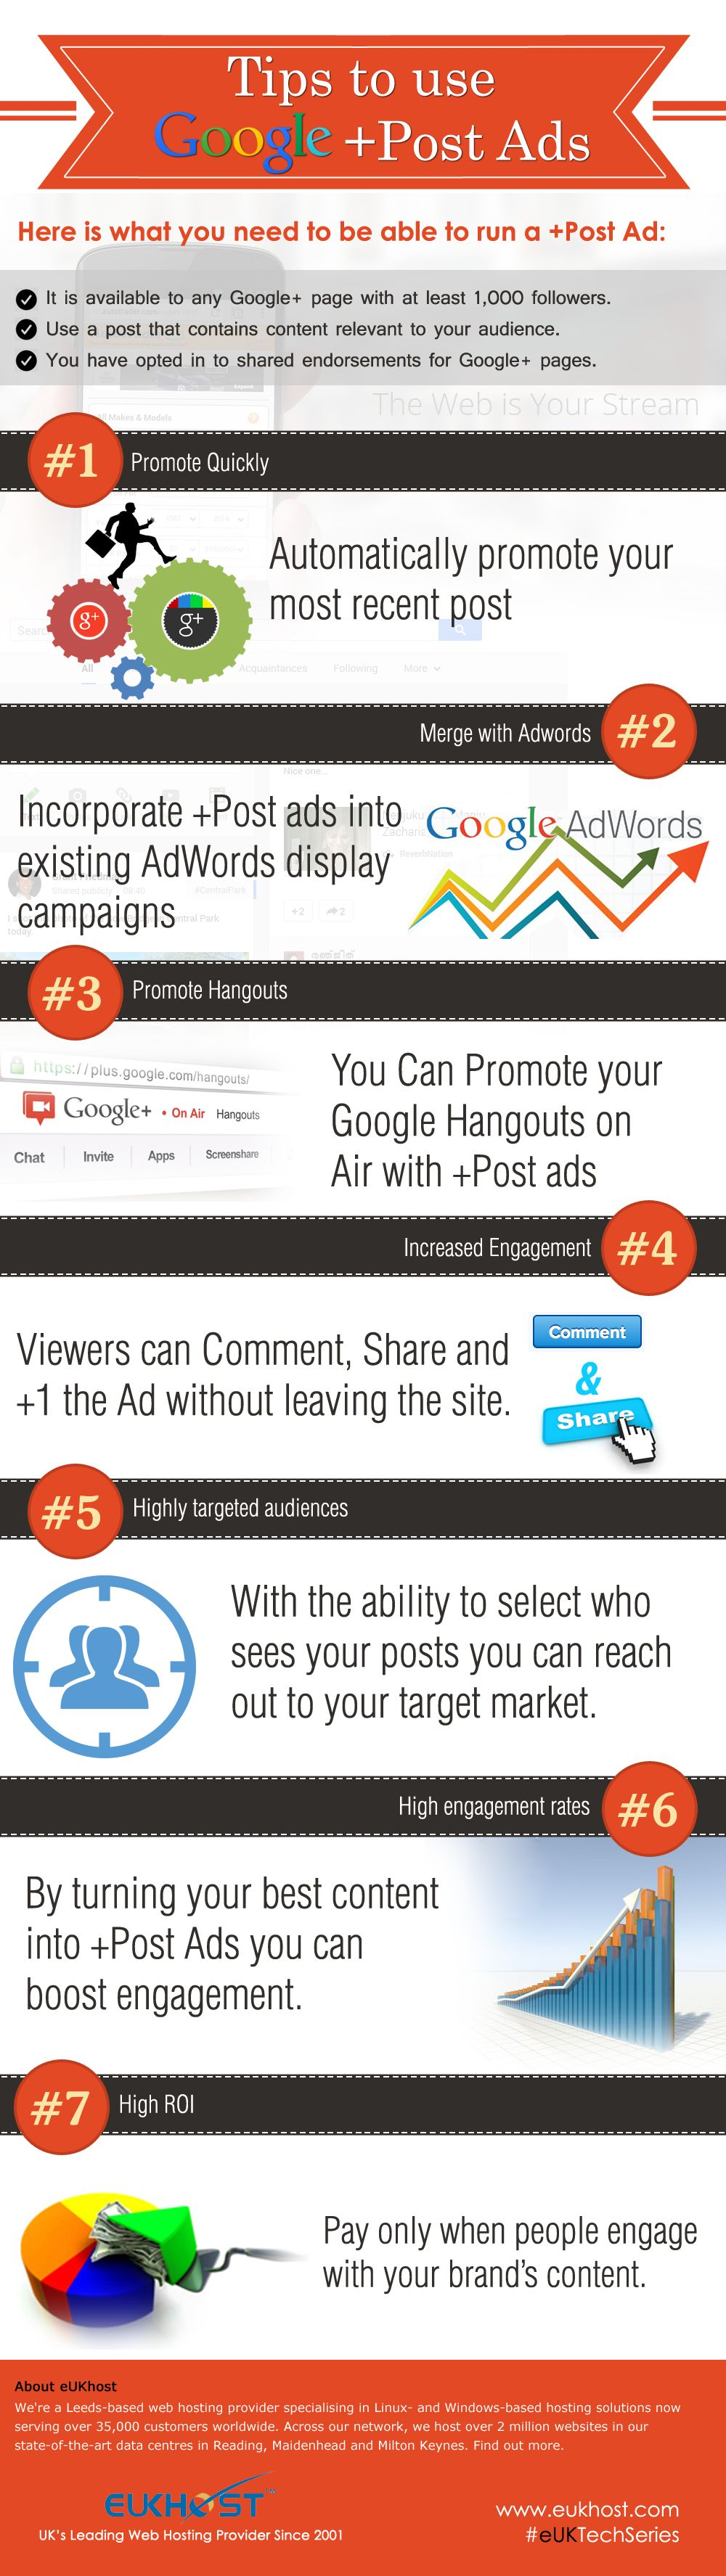 Tips to Use Google Plus Post Ads #googleplus #nfographic